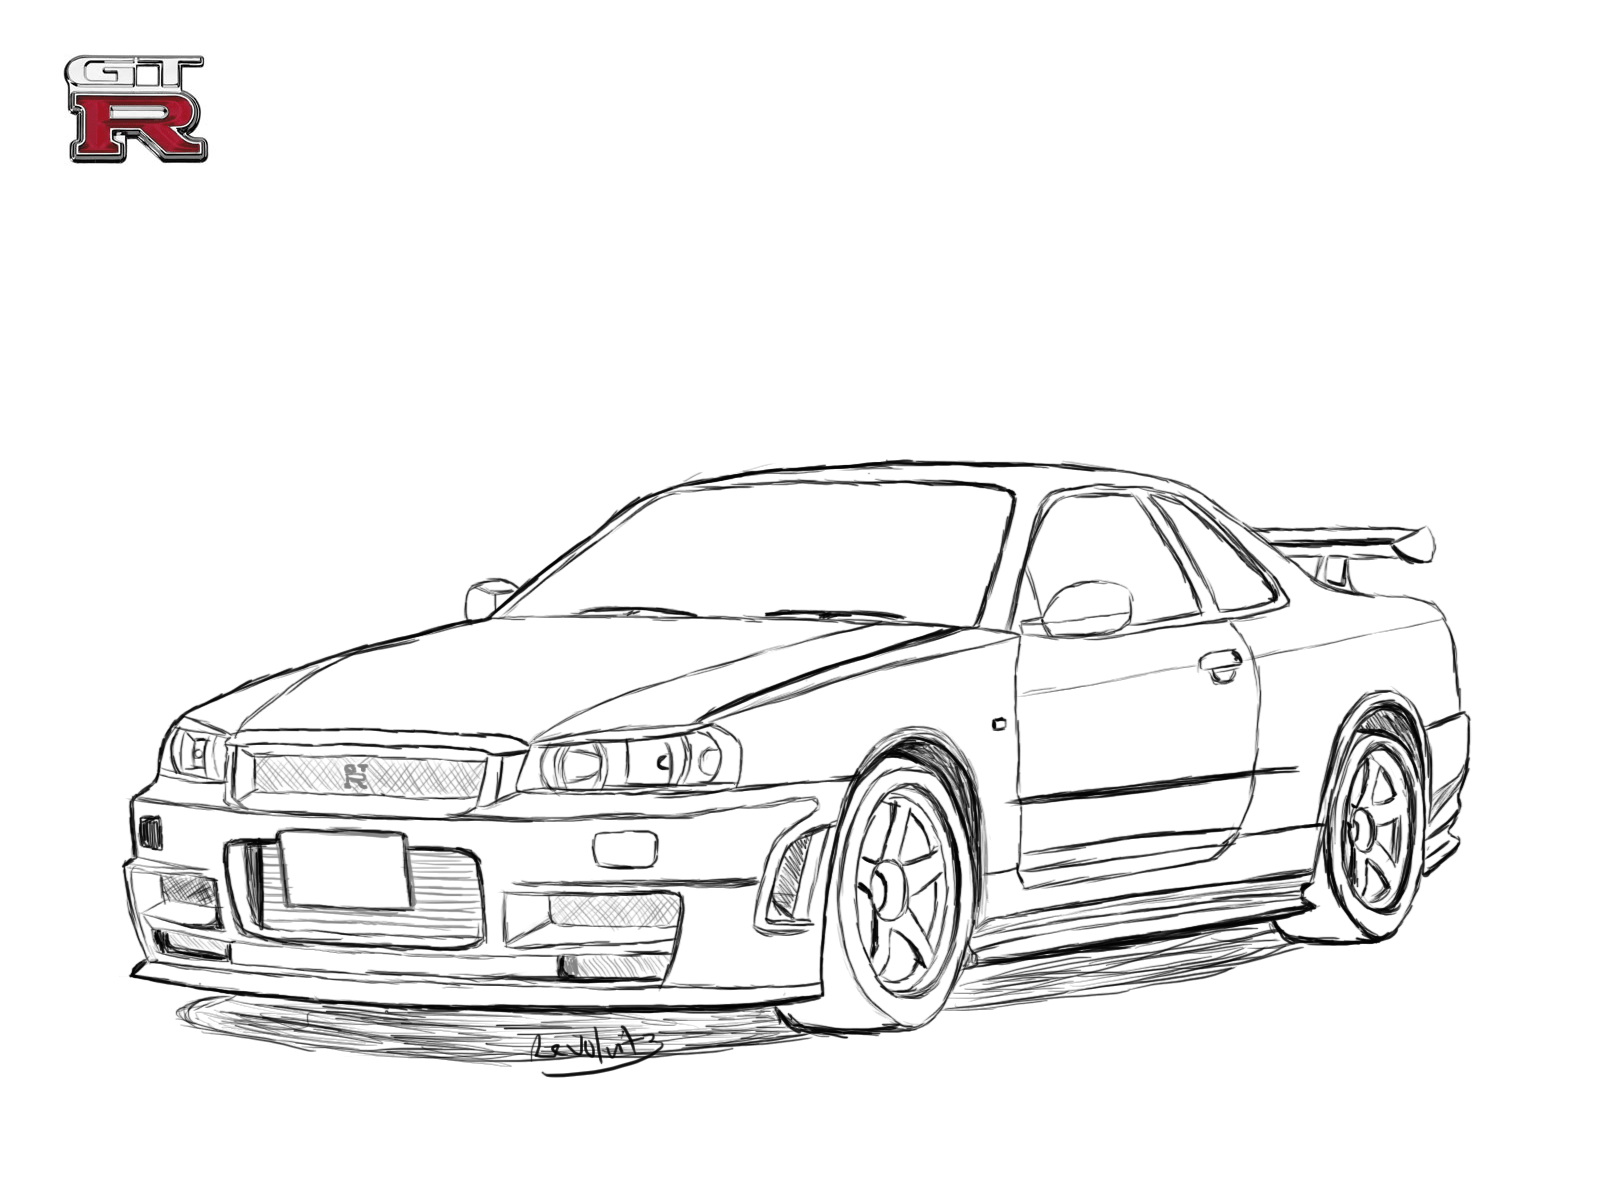 Nissan Skyline Sketch At Paintingvalley